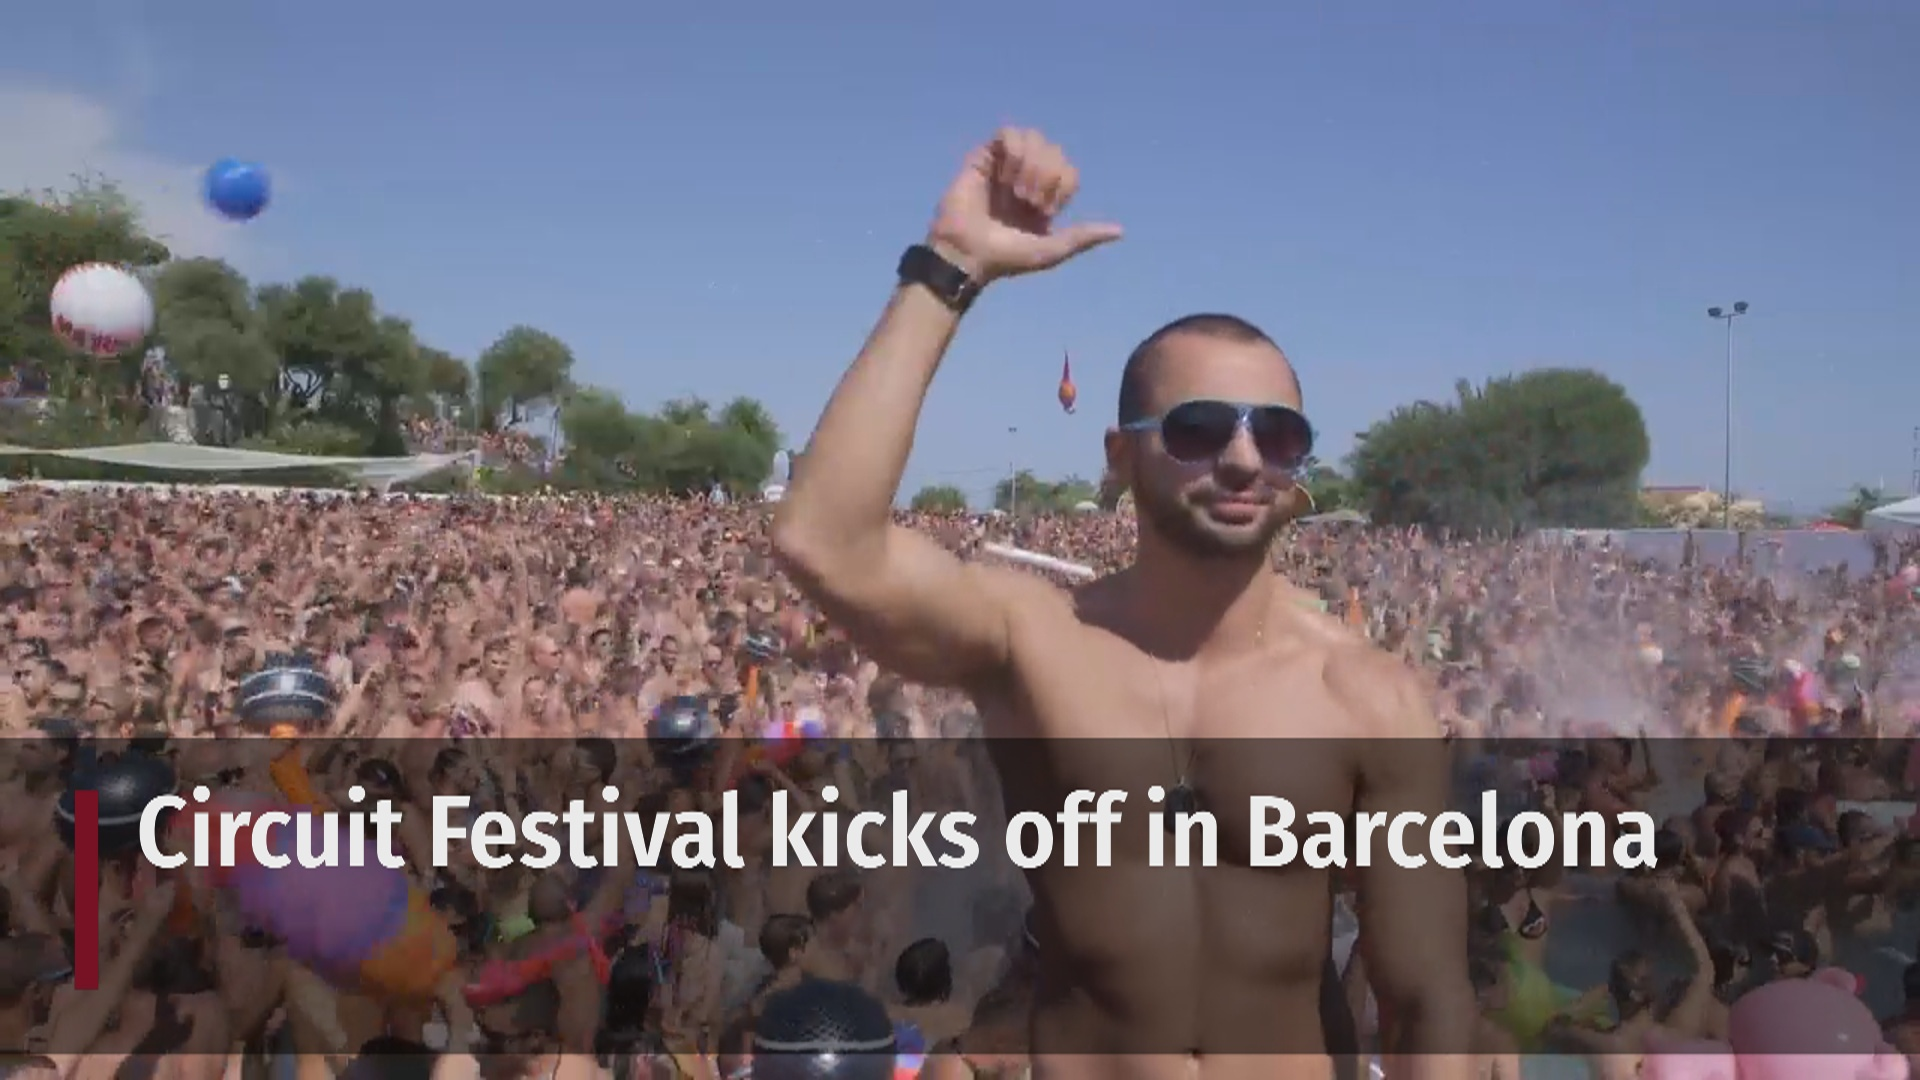 International gay festival kicks off in Barcelona